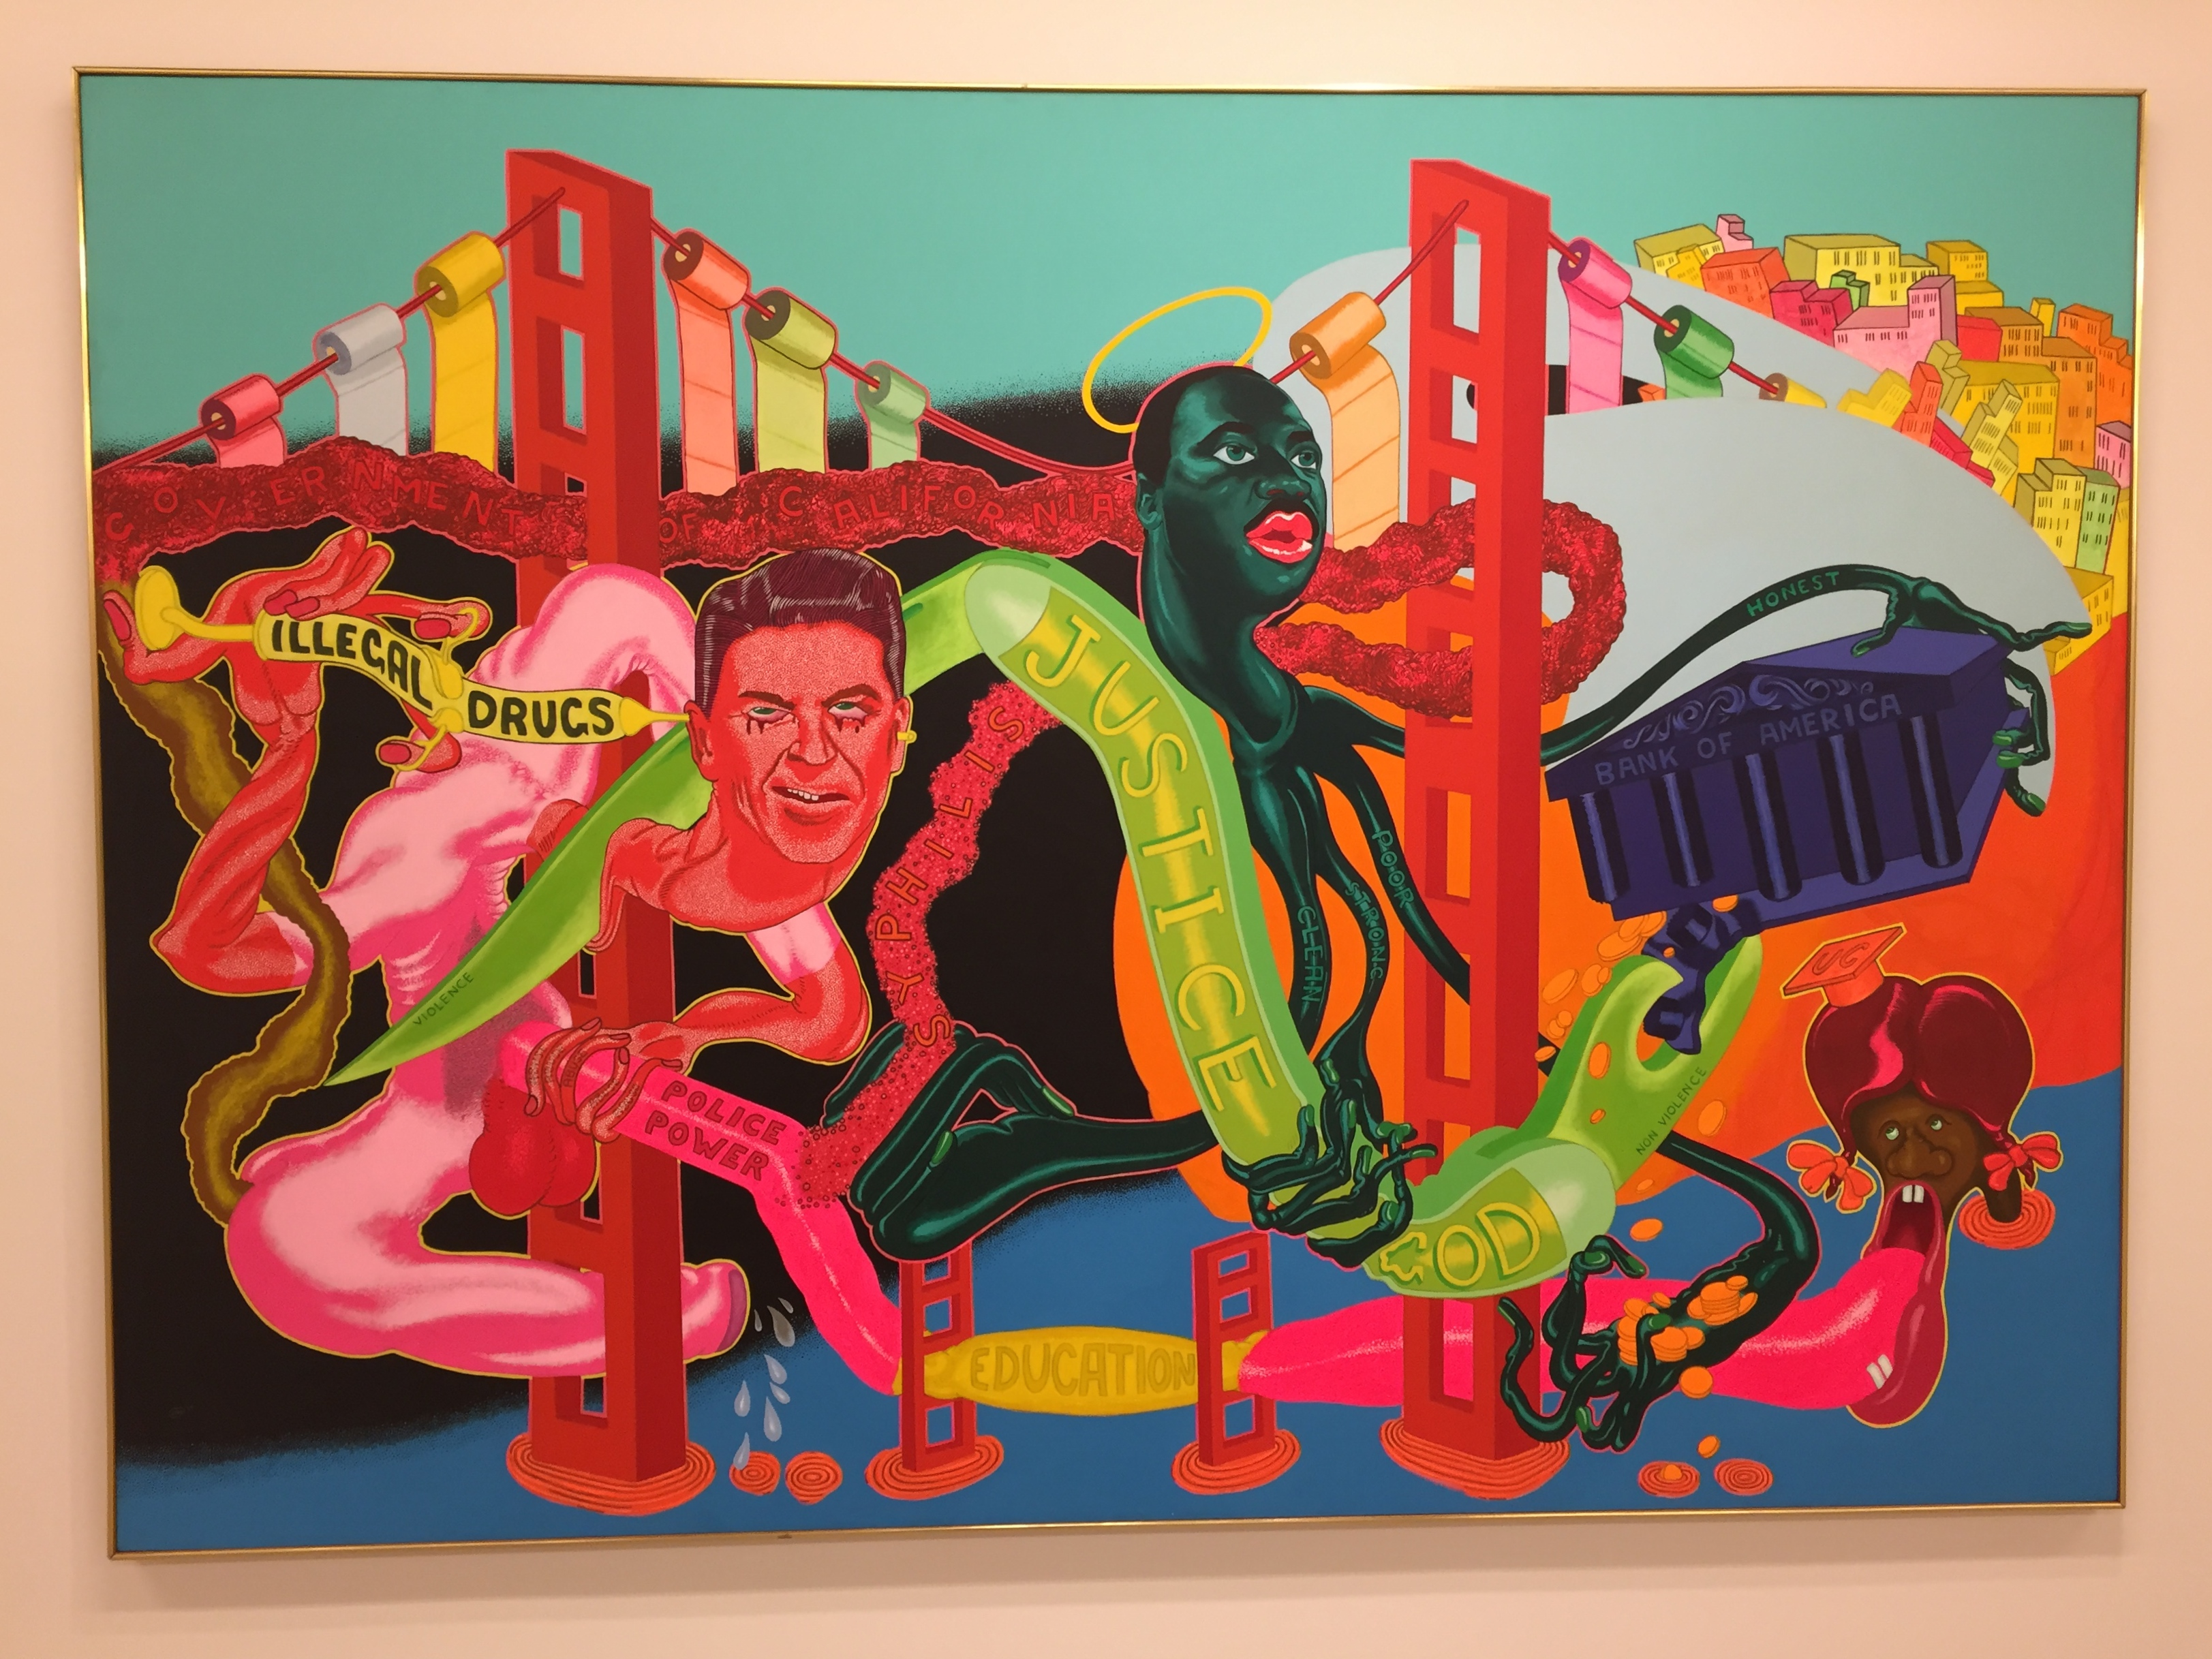 Peter Saul The Government of California, 1969 Acrylic on Canvas 68 x 96 inches